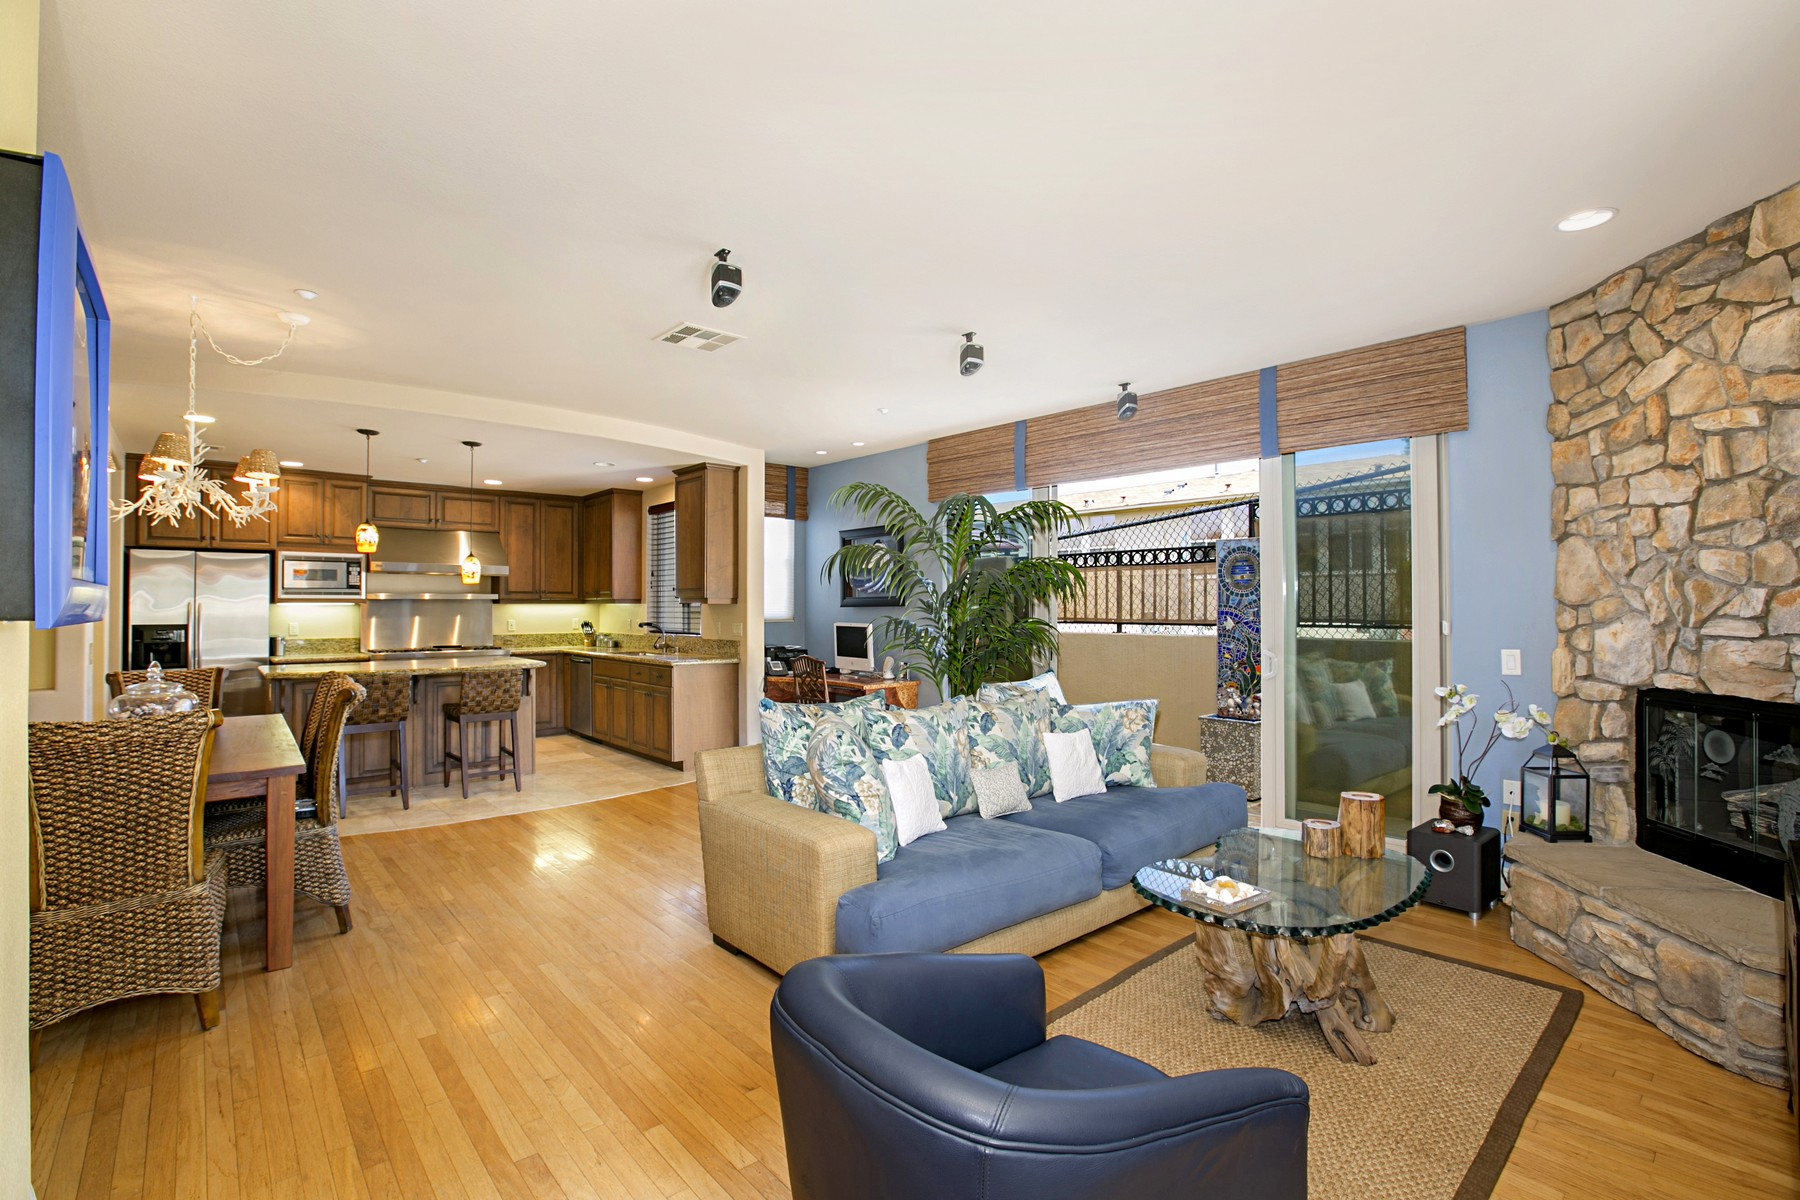 Townhouse for Sale at 307 North Rios Solana Beach, California 92075 United States